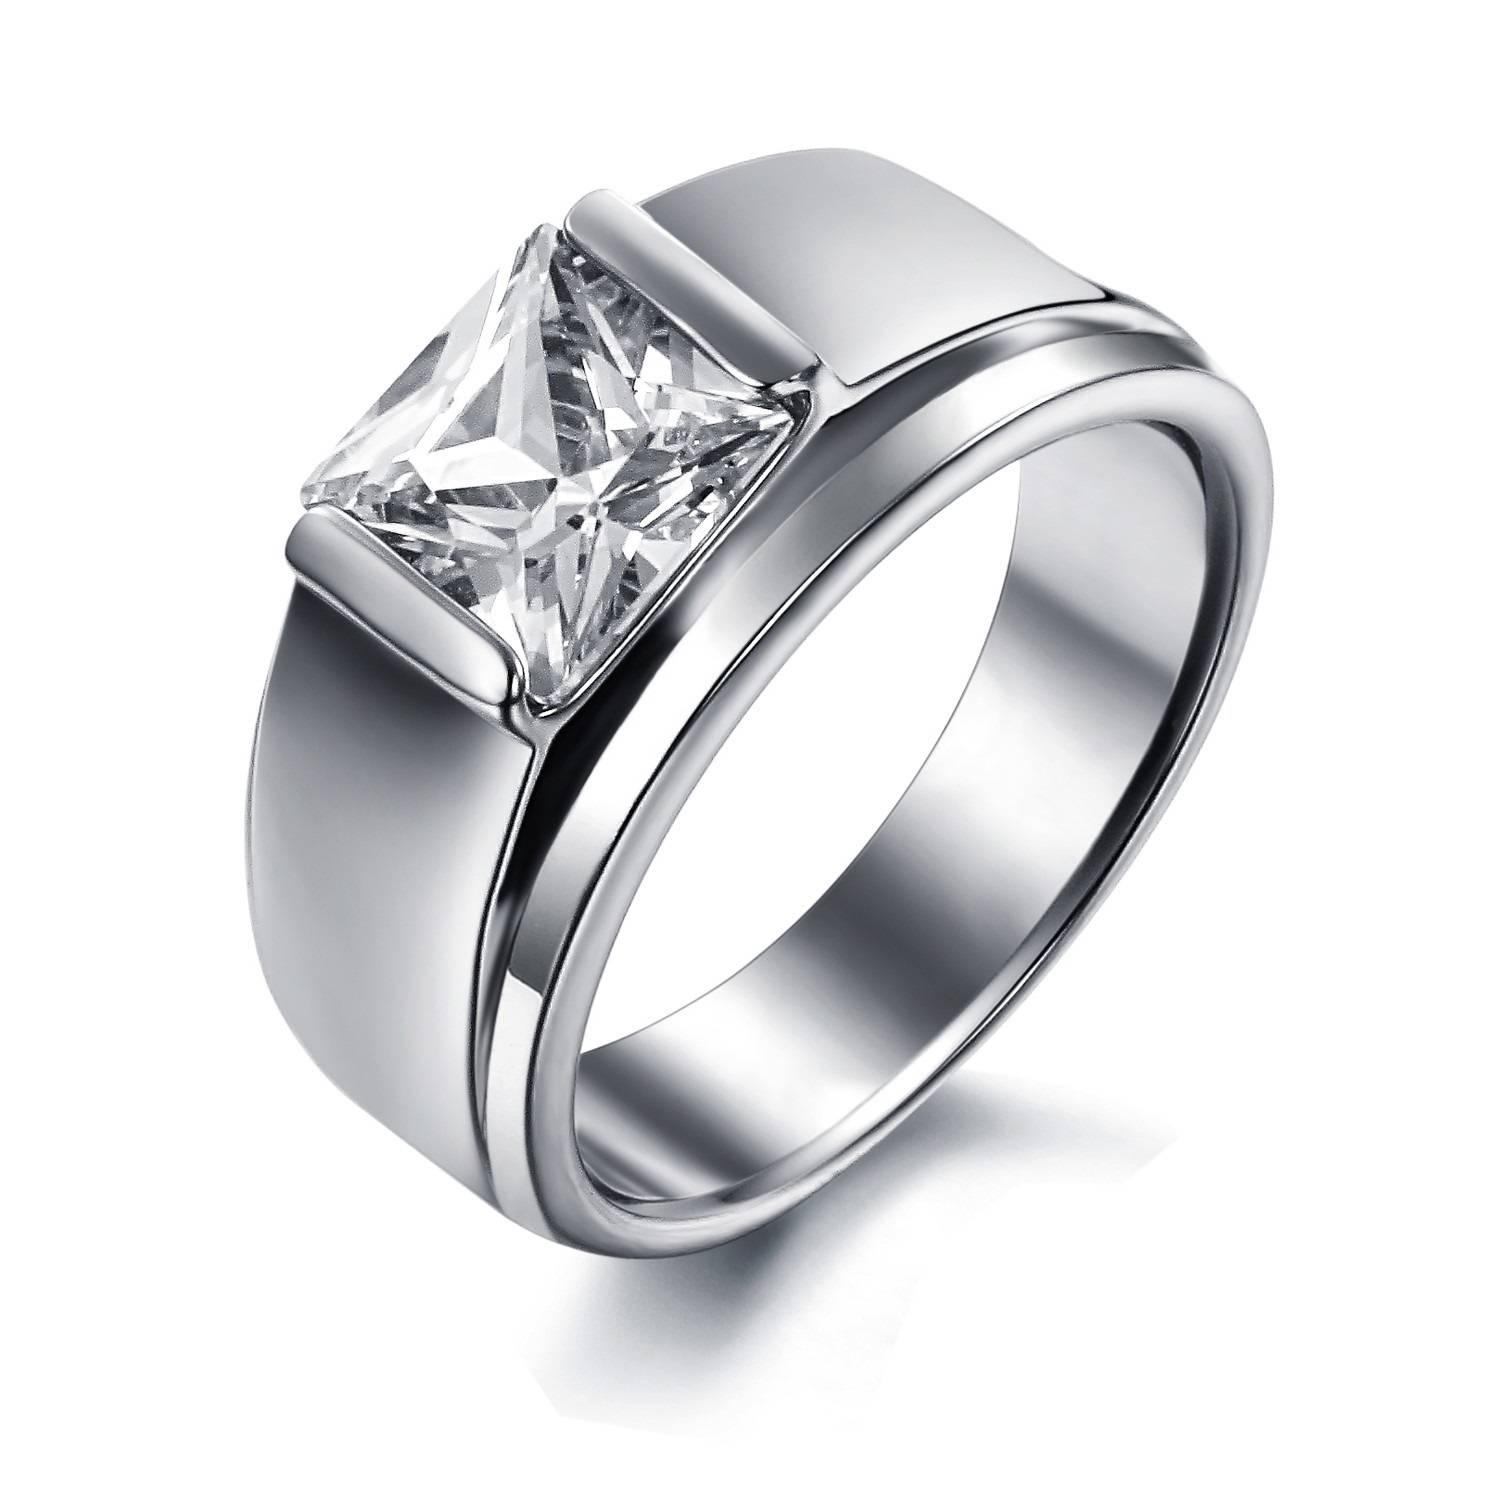 Women S Titanium Diamond Rings | Wedding, Promise, Diamond With Regard To Unique Womens Wedding Rings (View 15 of 15)